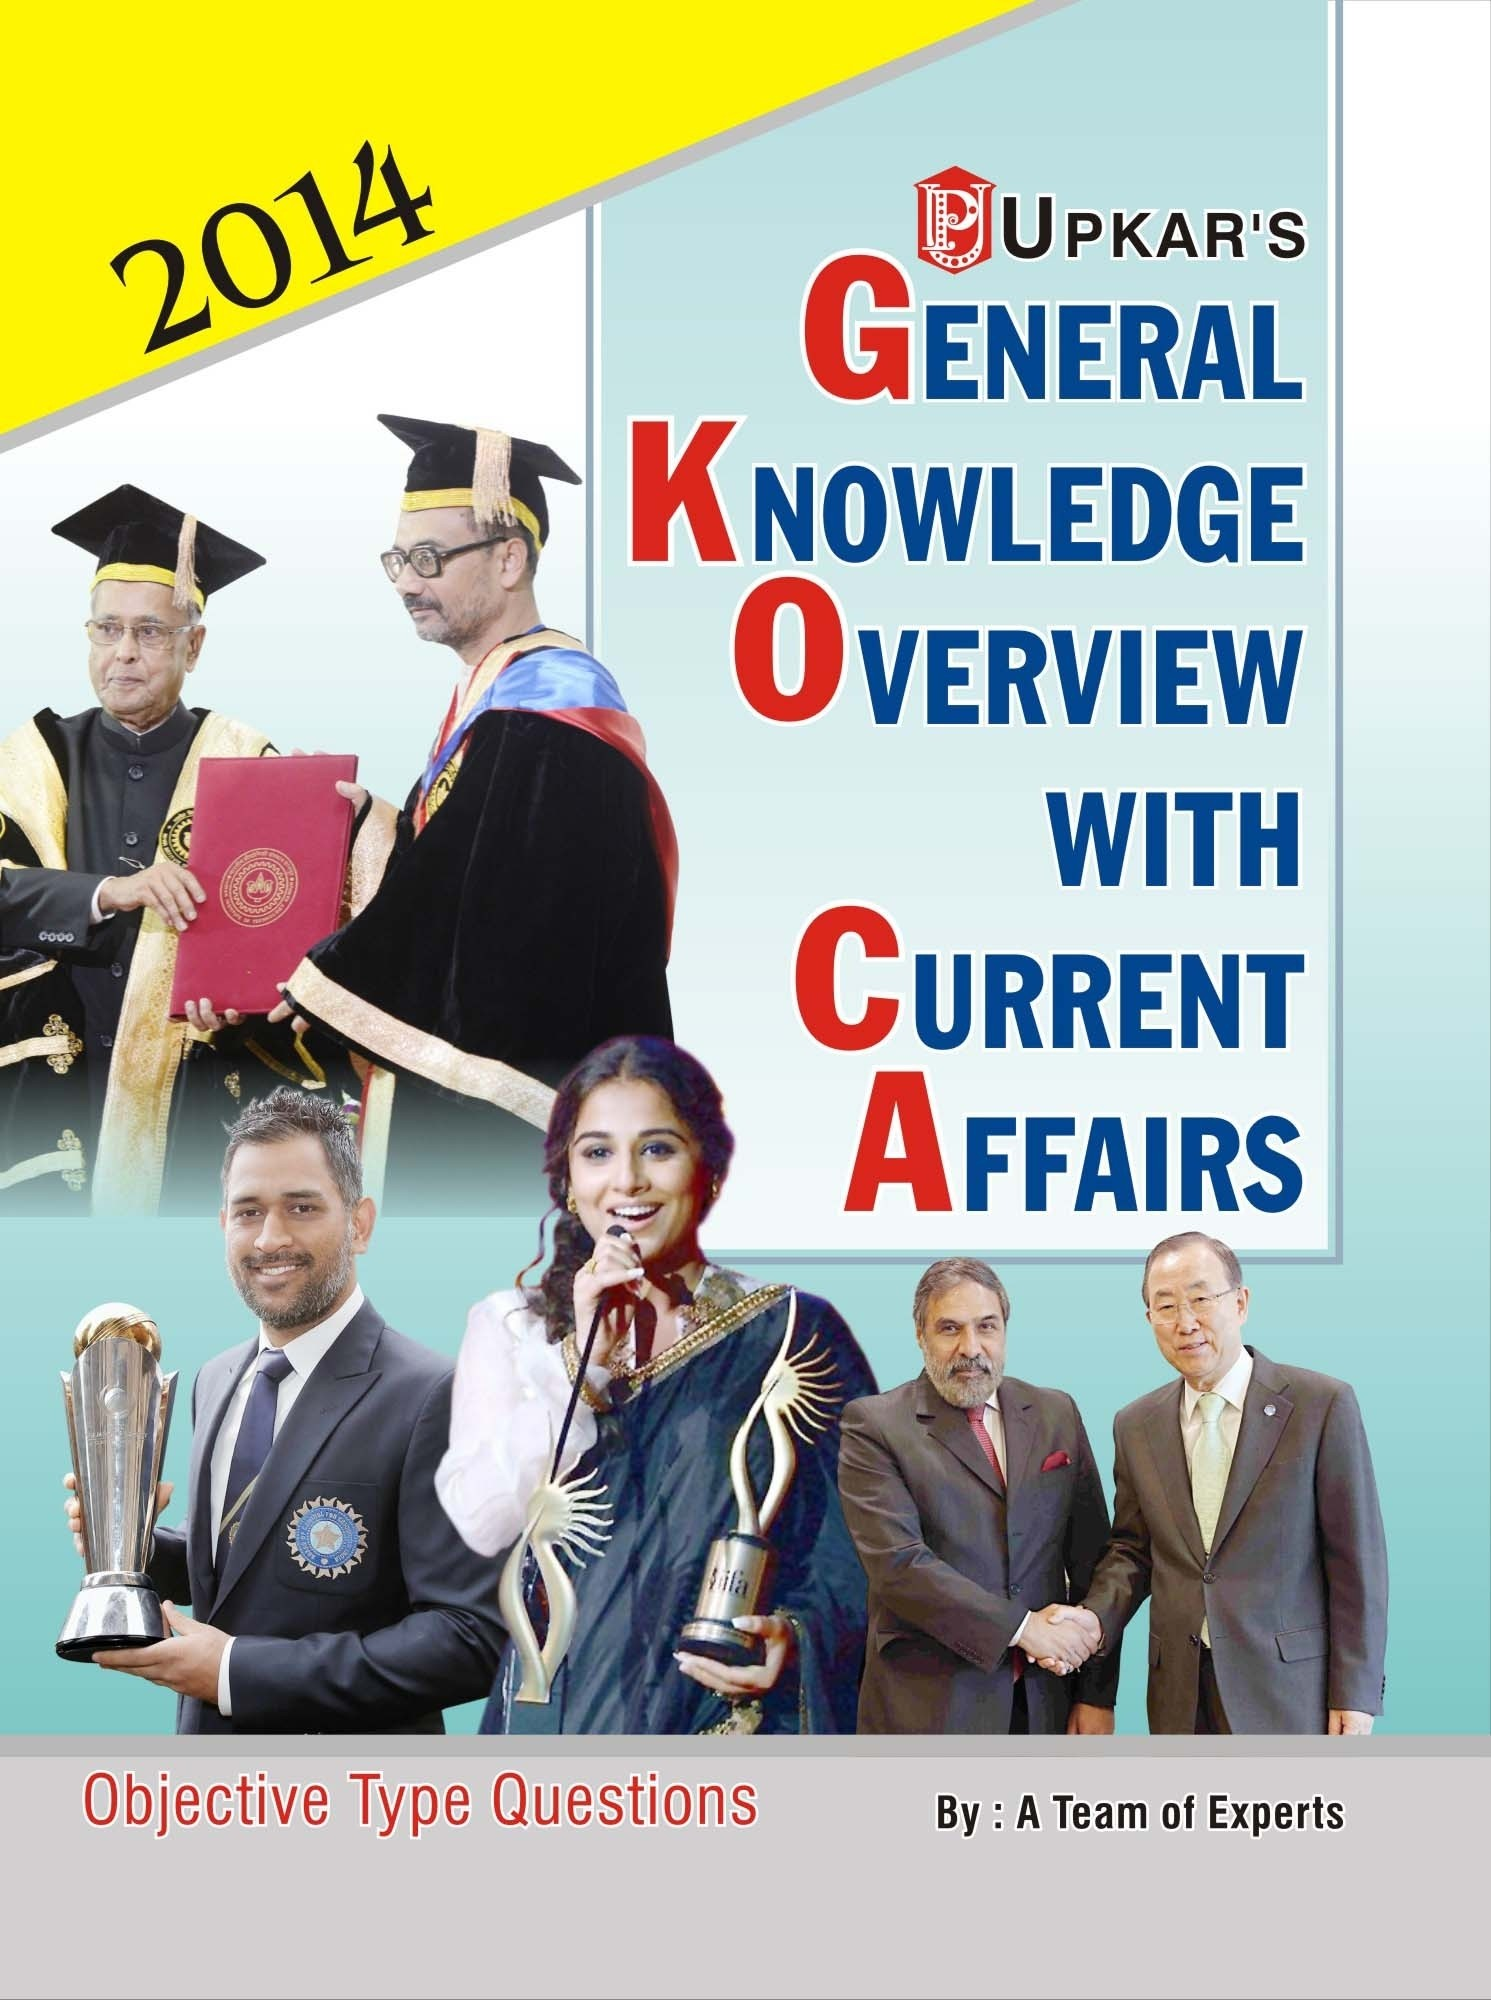 General Knowledge Overview With